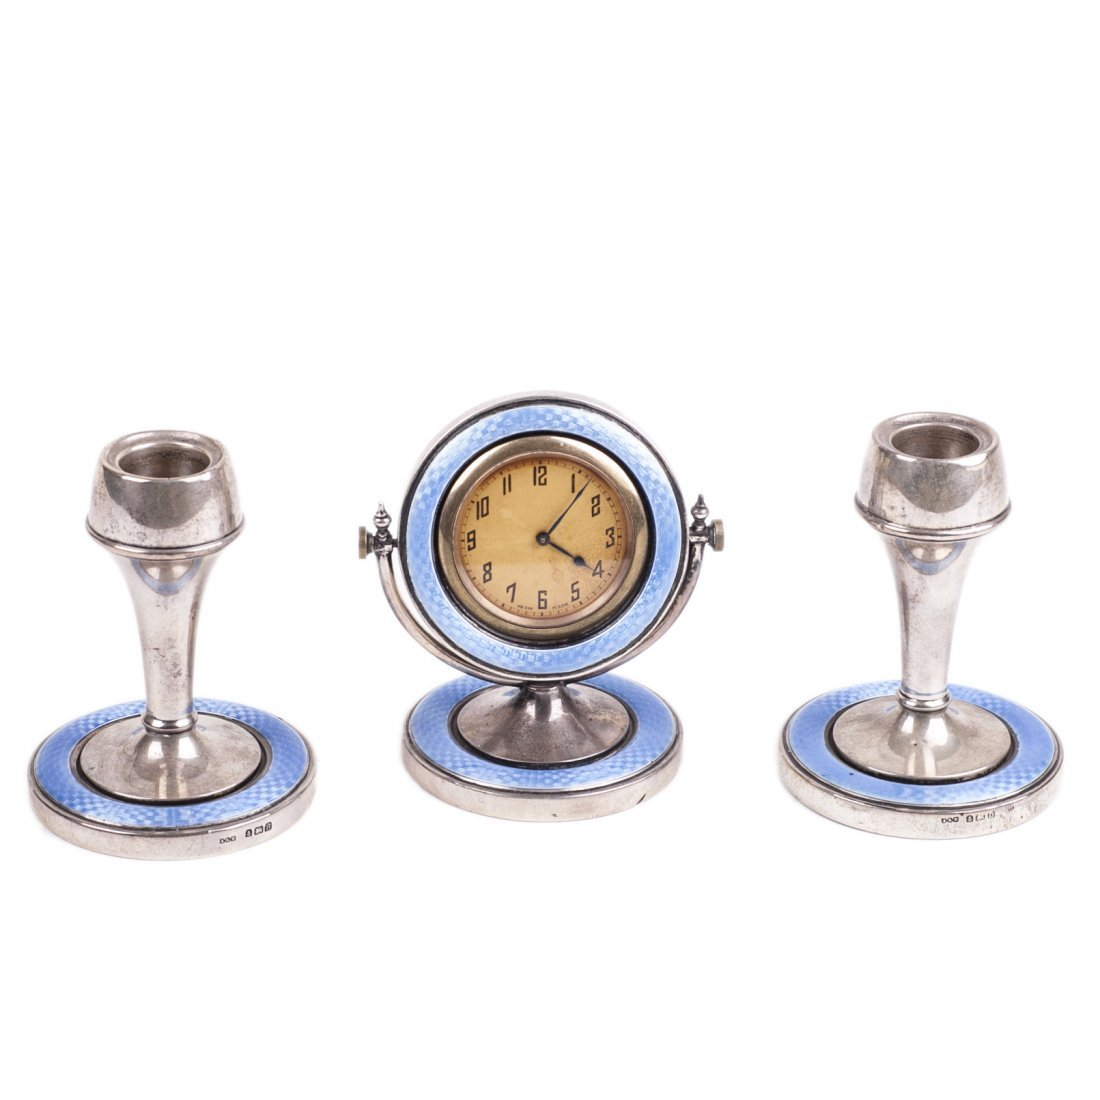 English cabinet desk clock with 2 candlesticks